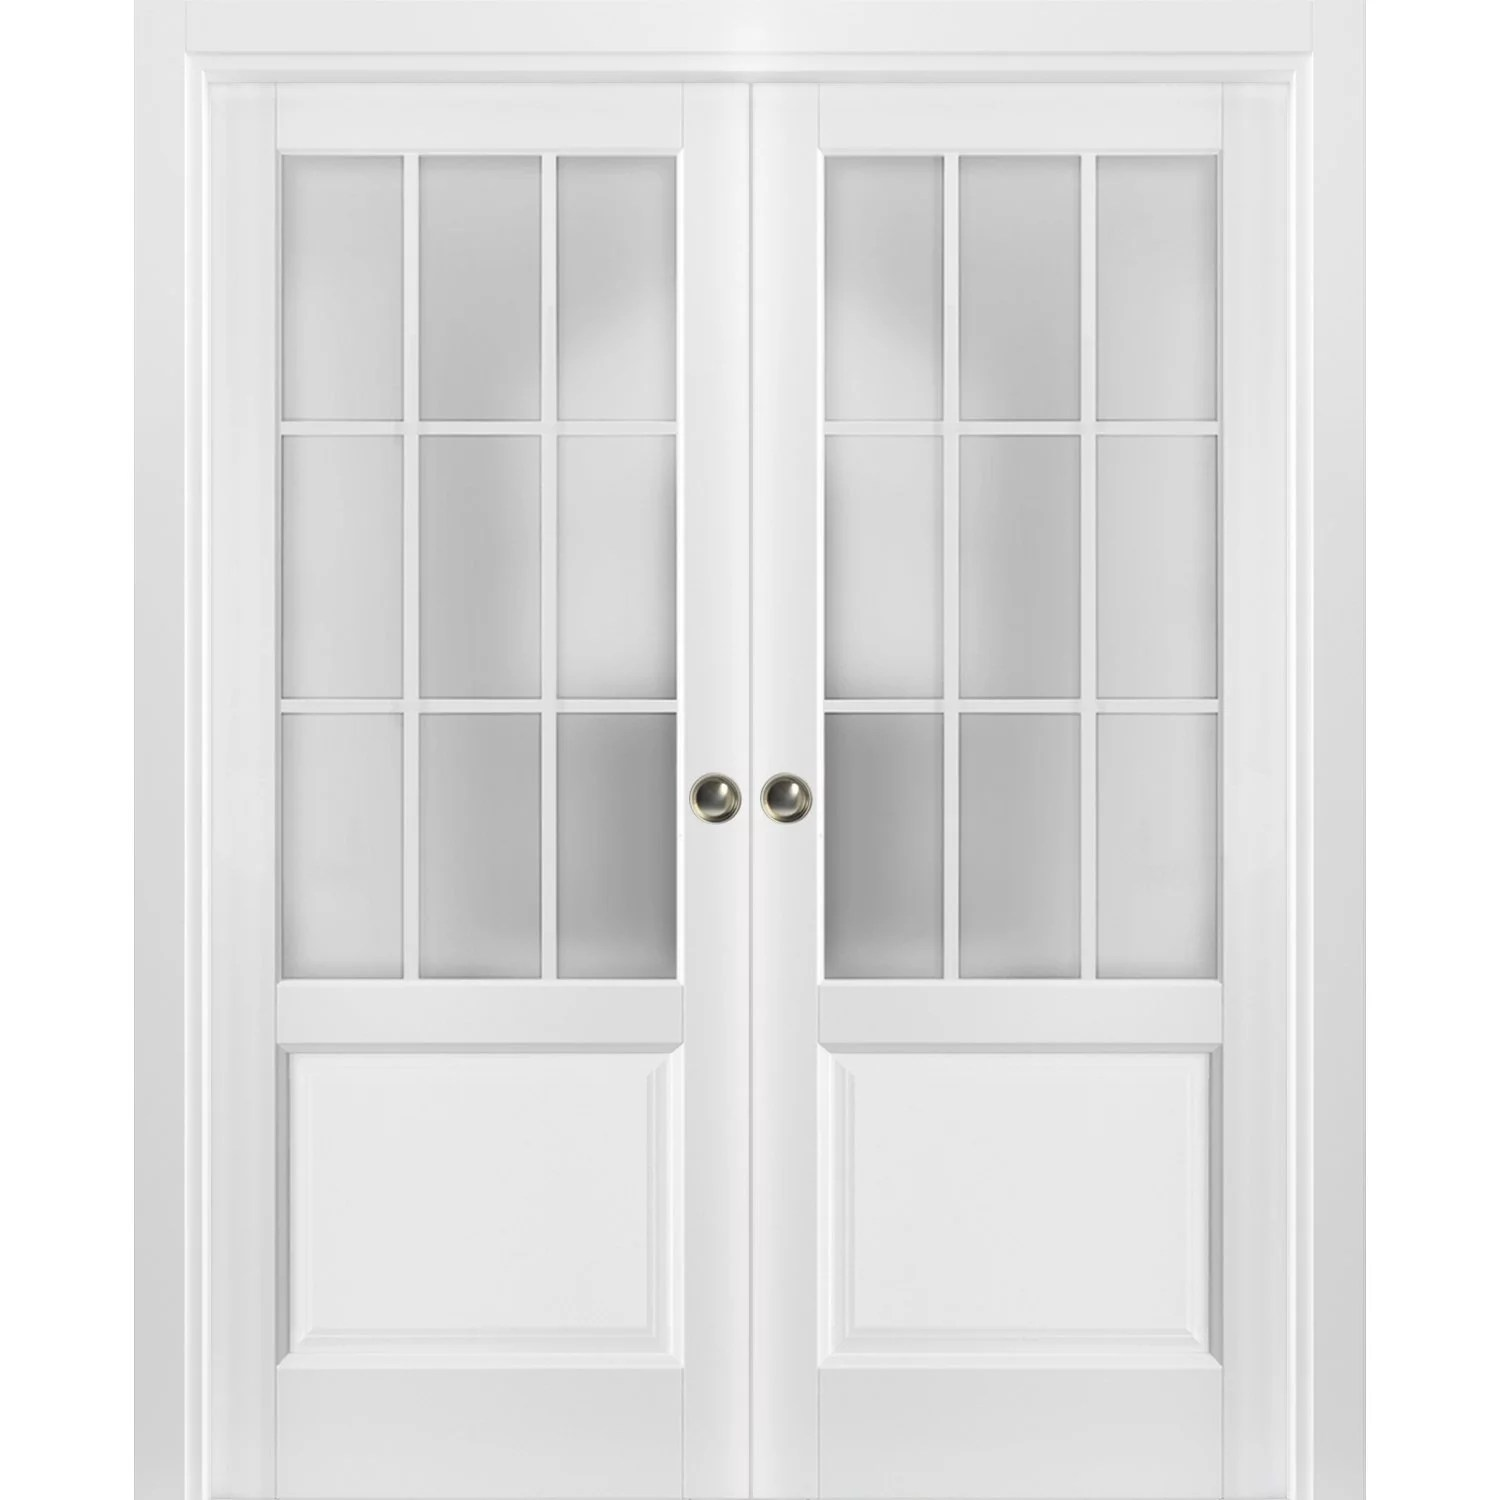 sliding french double pocket doors 72 x 80 inches frosted glass 9 lites